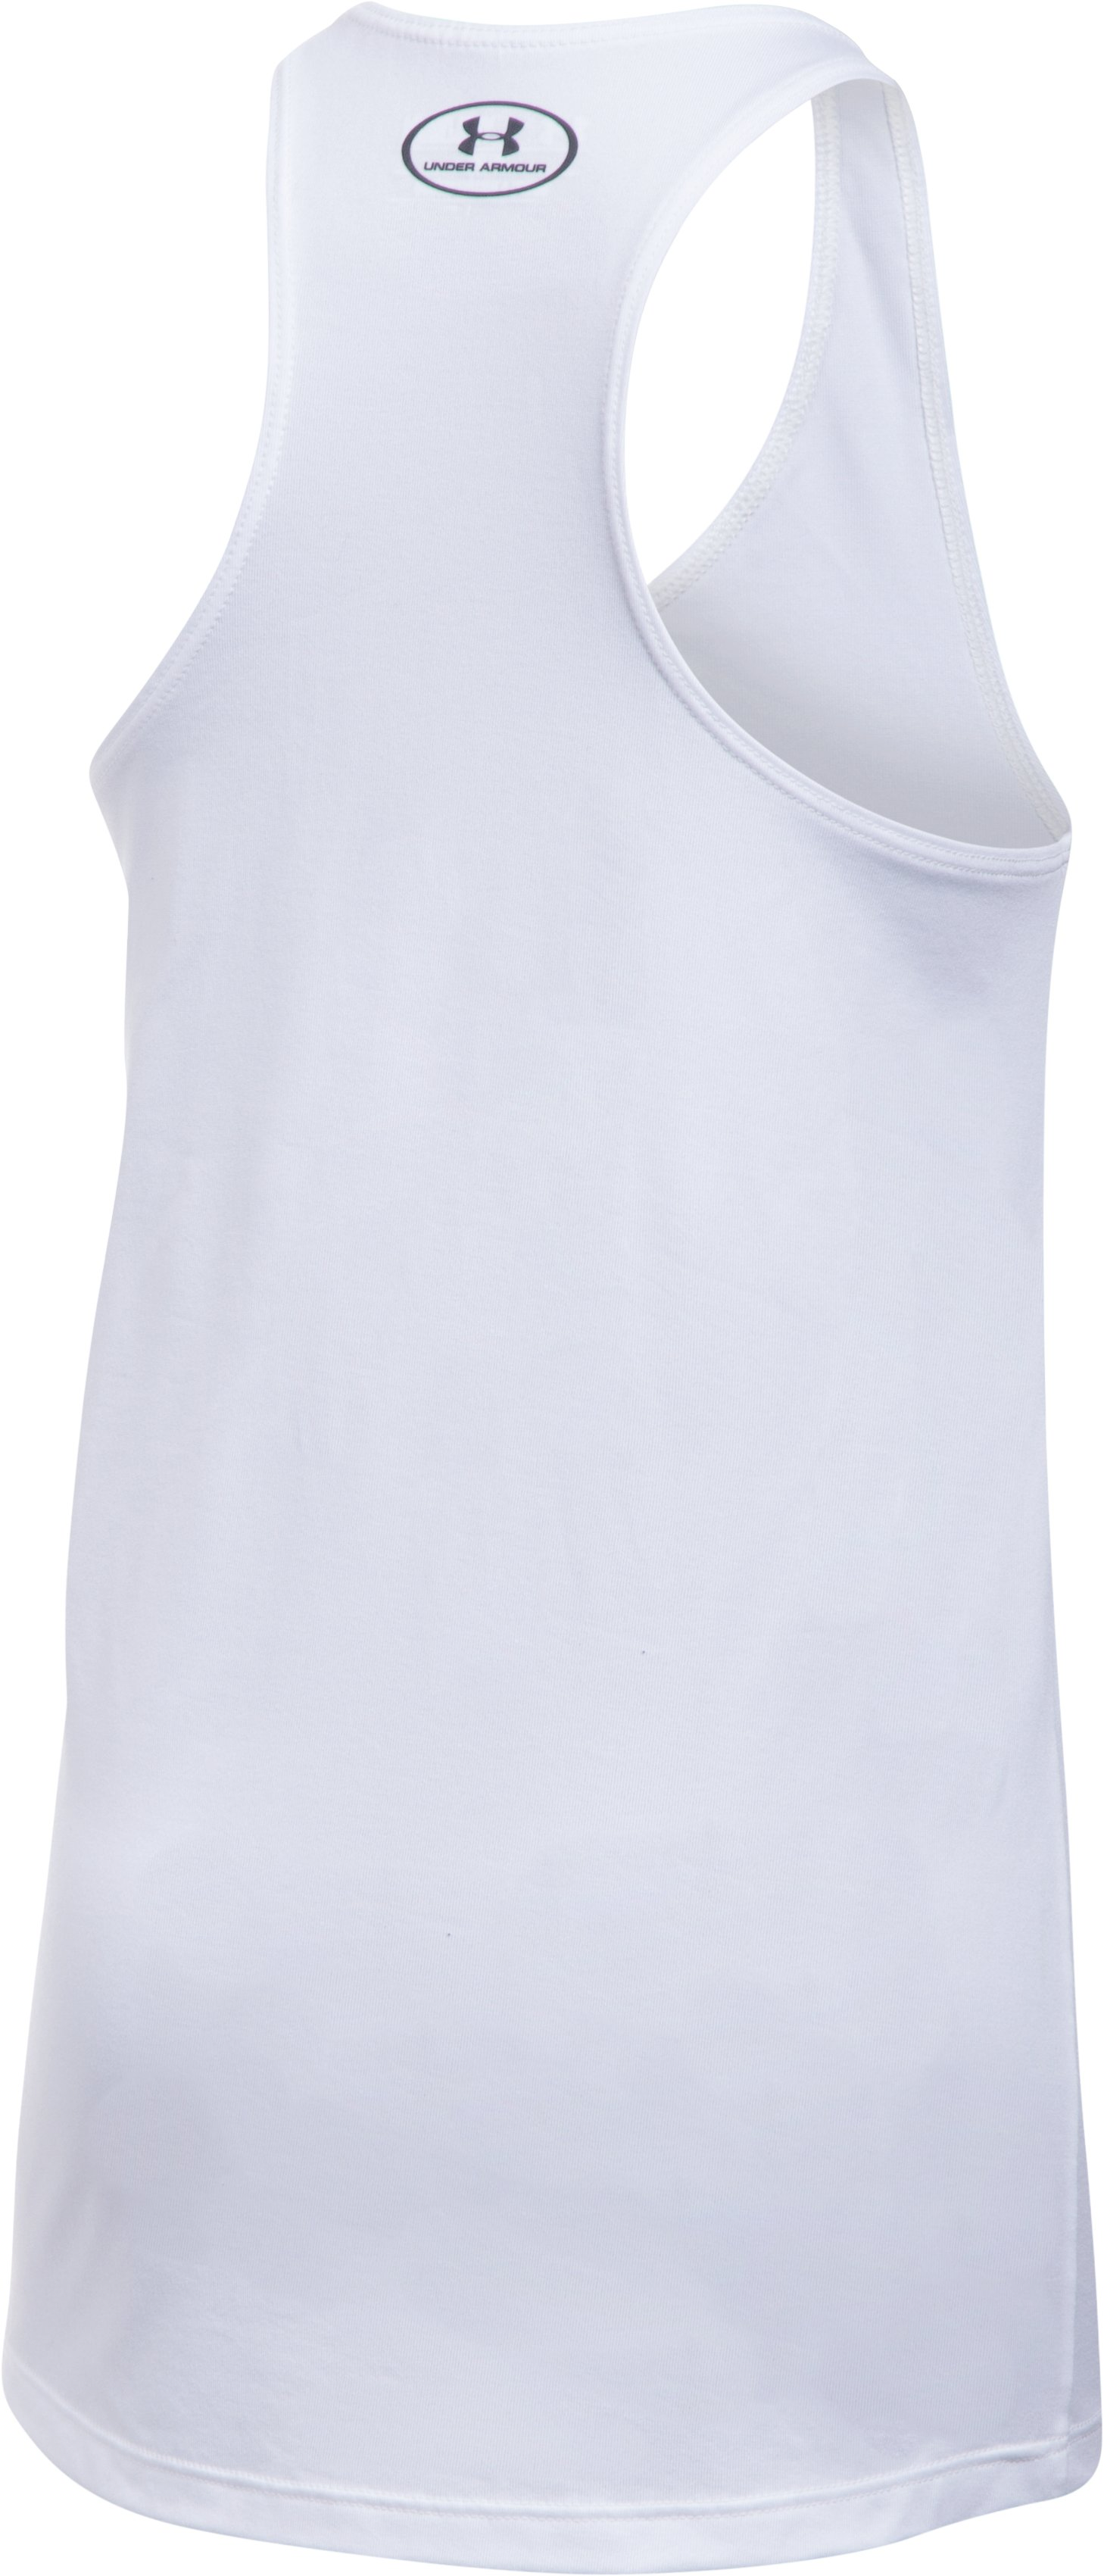 Girls' UA Under Armour Tank, White, undefined